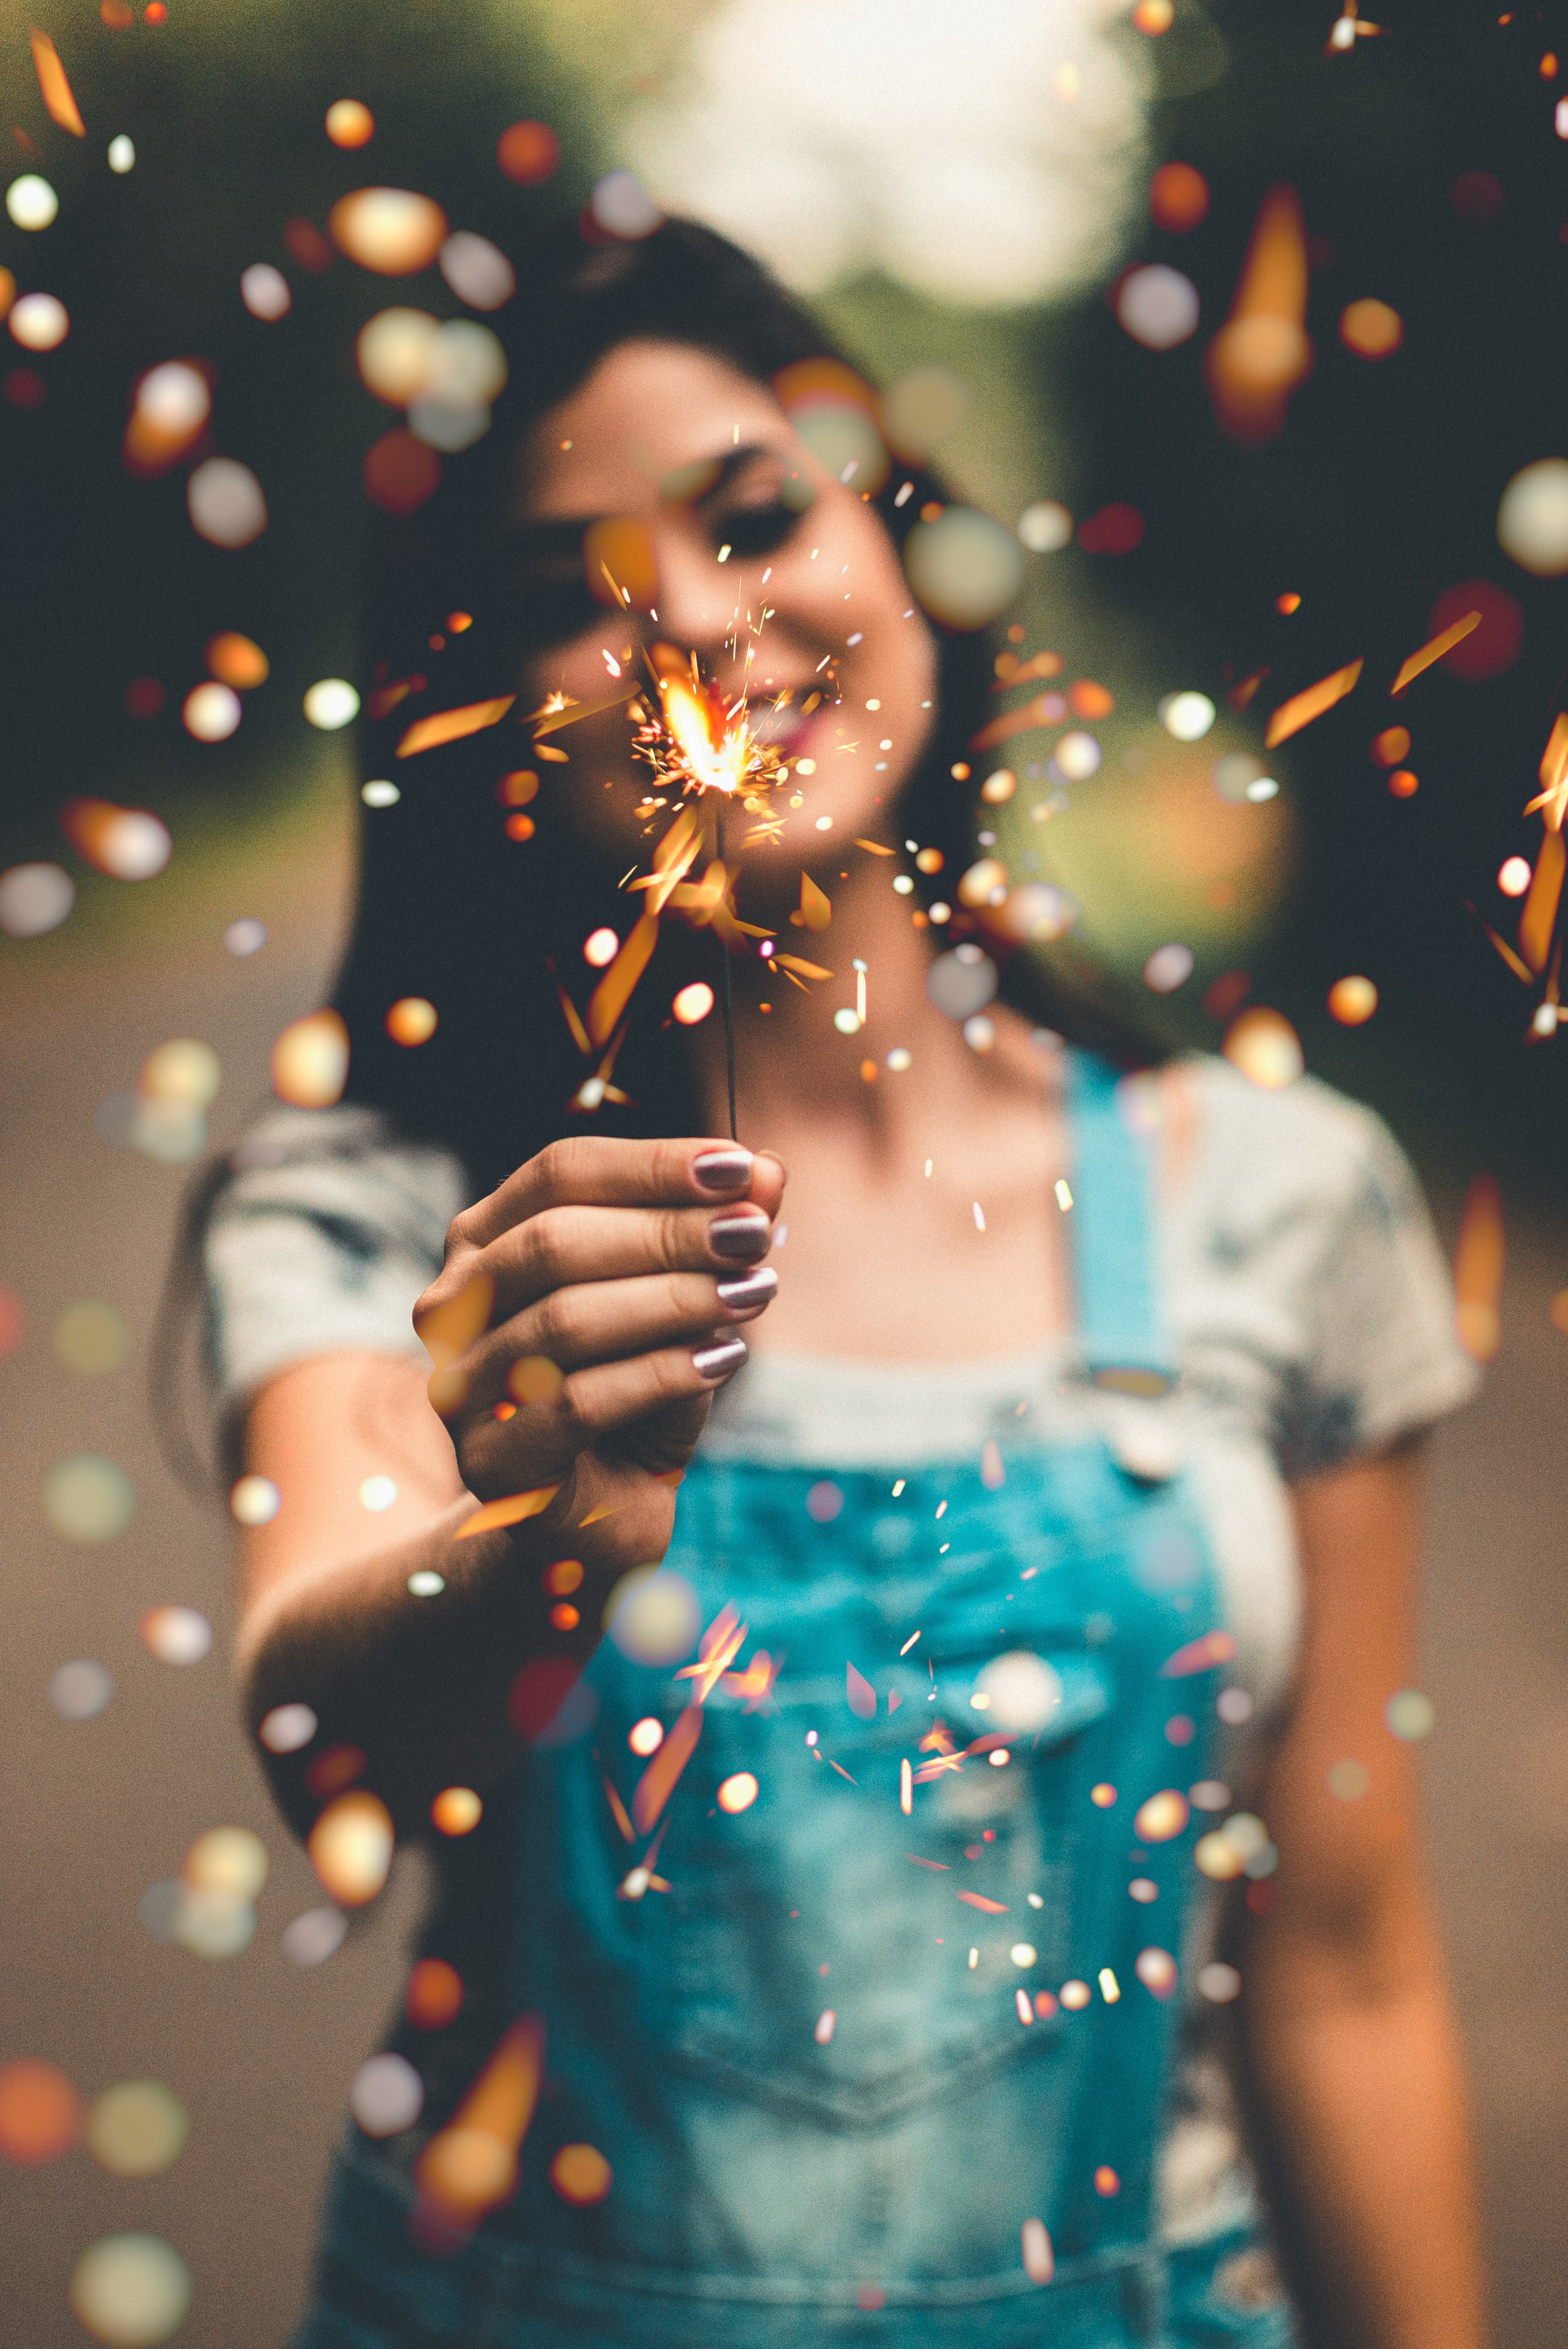 What new habit do you want to spark in 2019? What's one habit you're going to let go? -